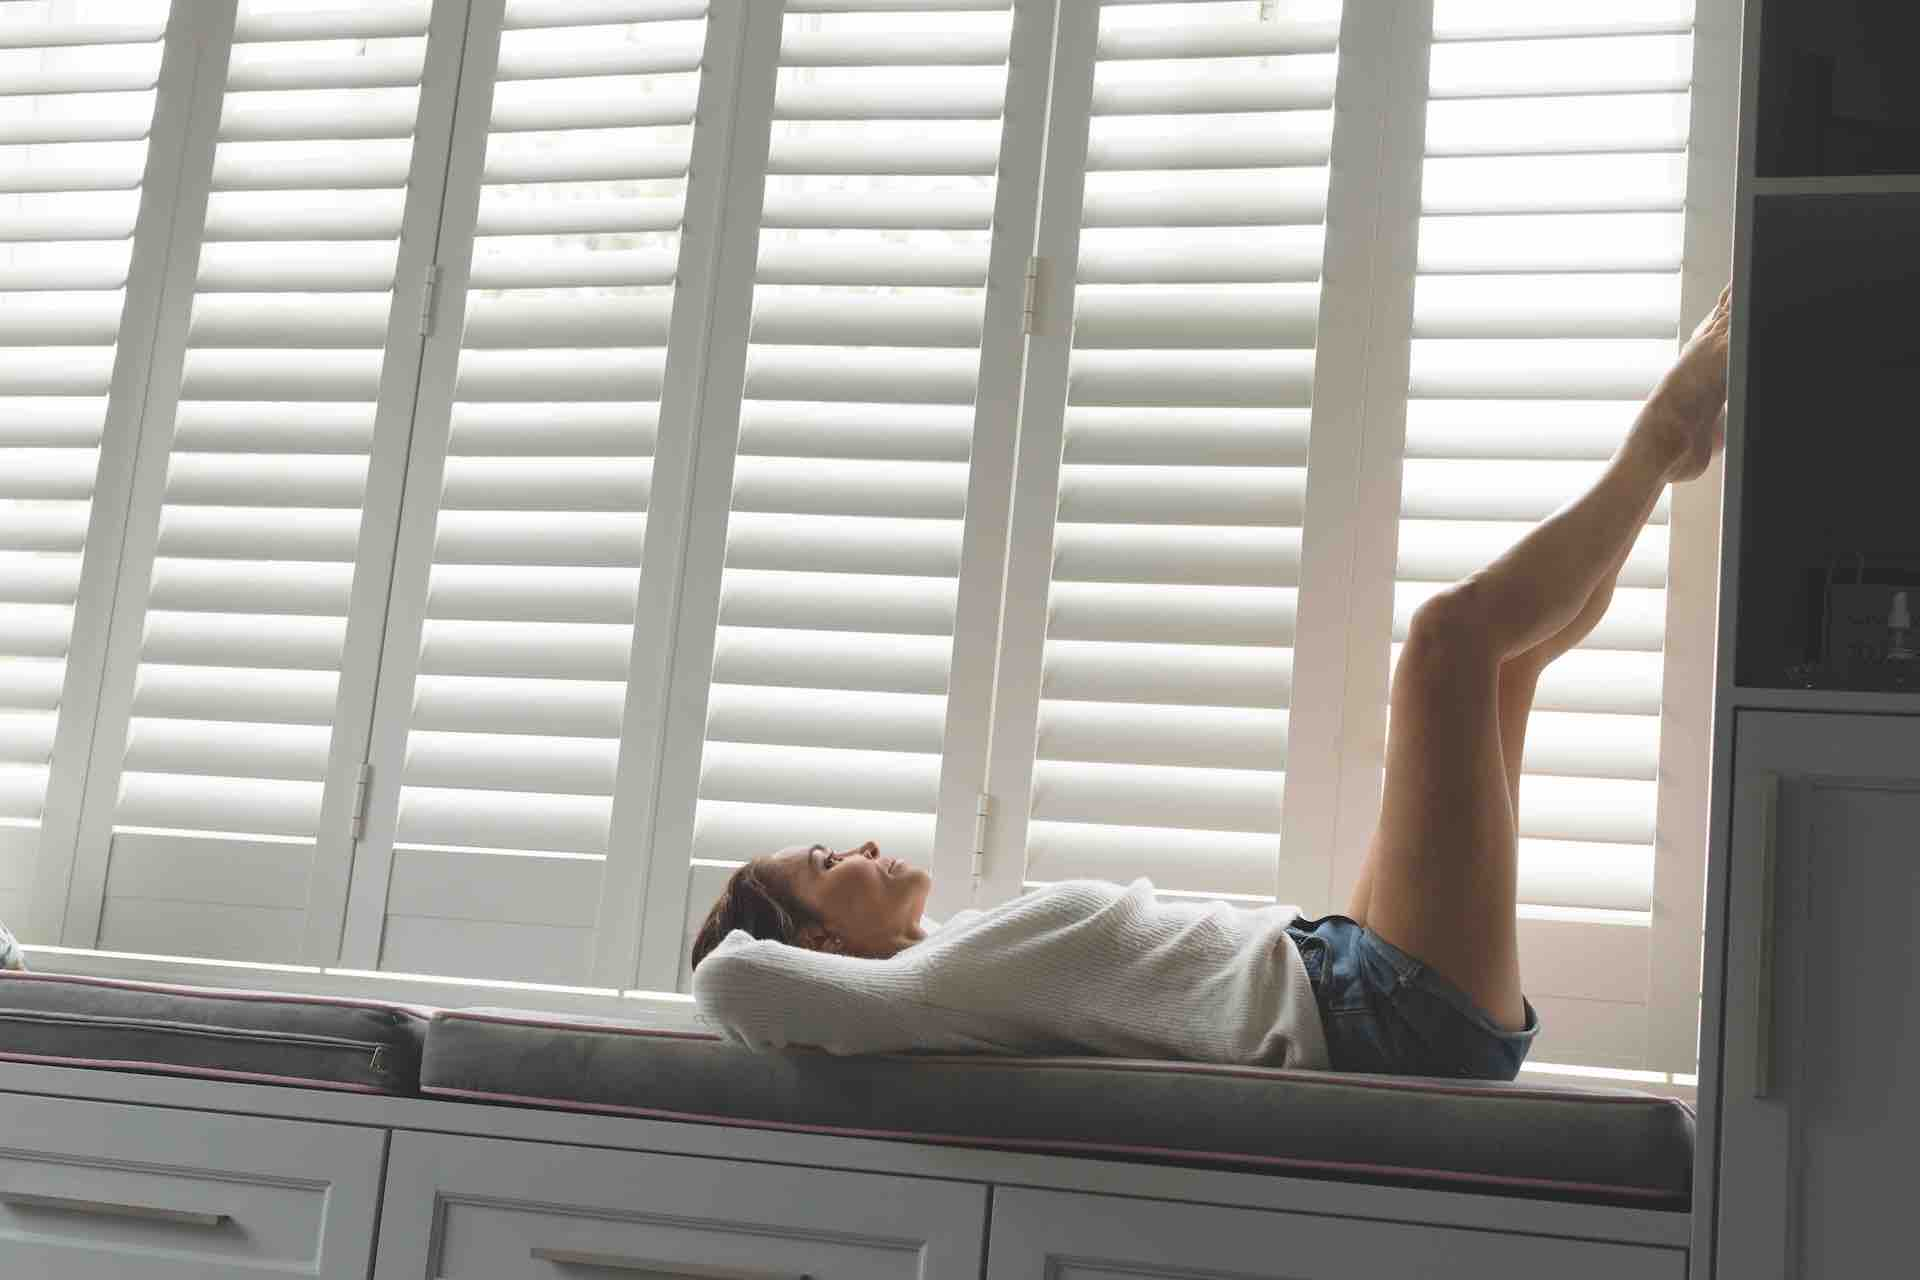 how to deal with toxic family when you are stuck together blog header image - girl laying on window seat with feet up